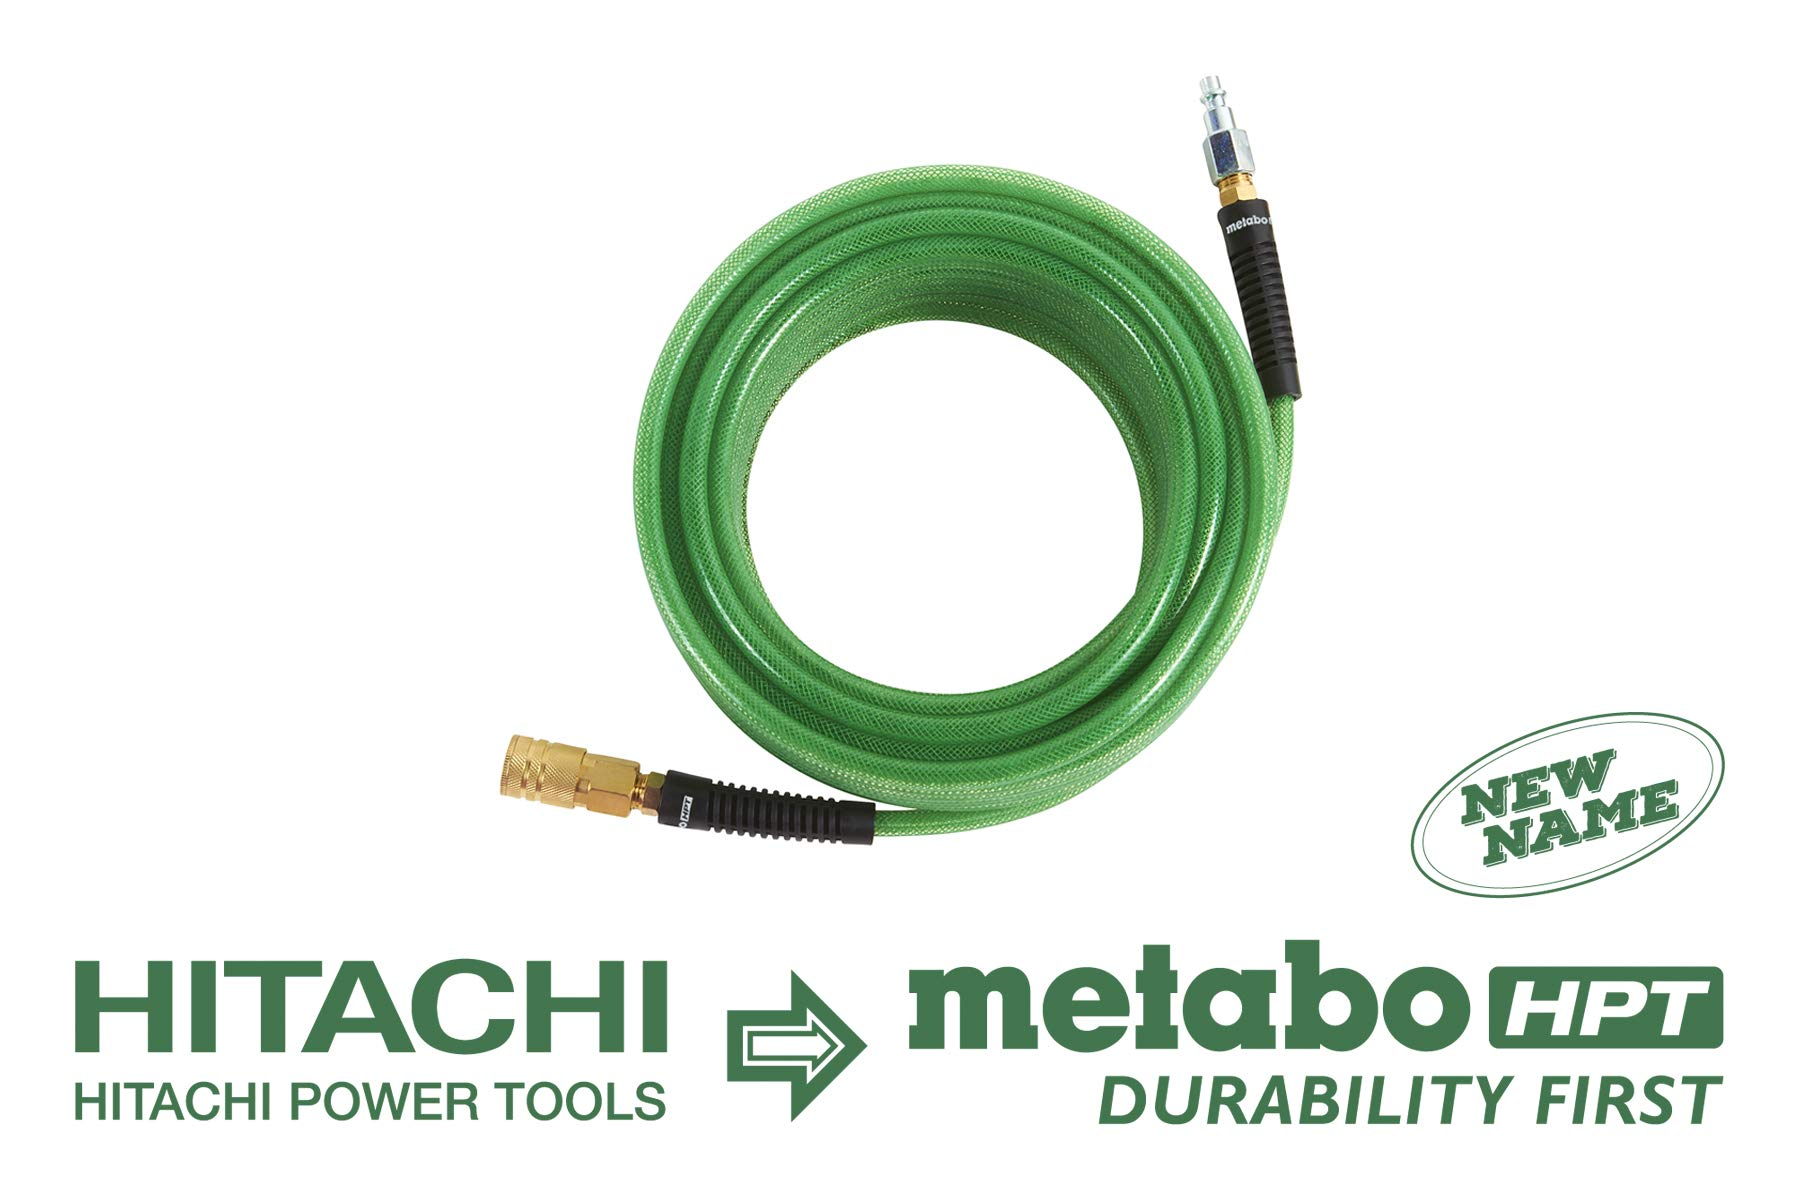 Metabo HPT 115155M Air Nailer Hose, 1/4-Inch x 50 Ft, Professional Grade Polyurethane, 1/4-Inch Industrial Fittings, 300 PSI, Remains Flexible in Cold Temperatures, Spiral Reinforced by Metabo HPT